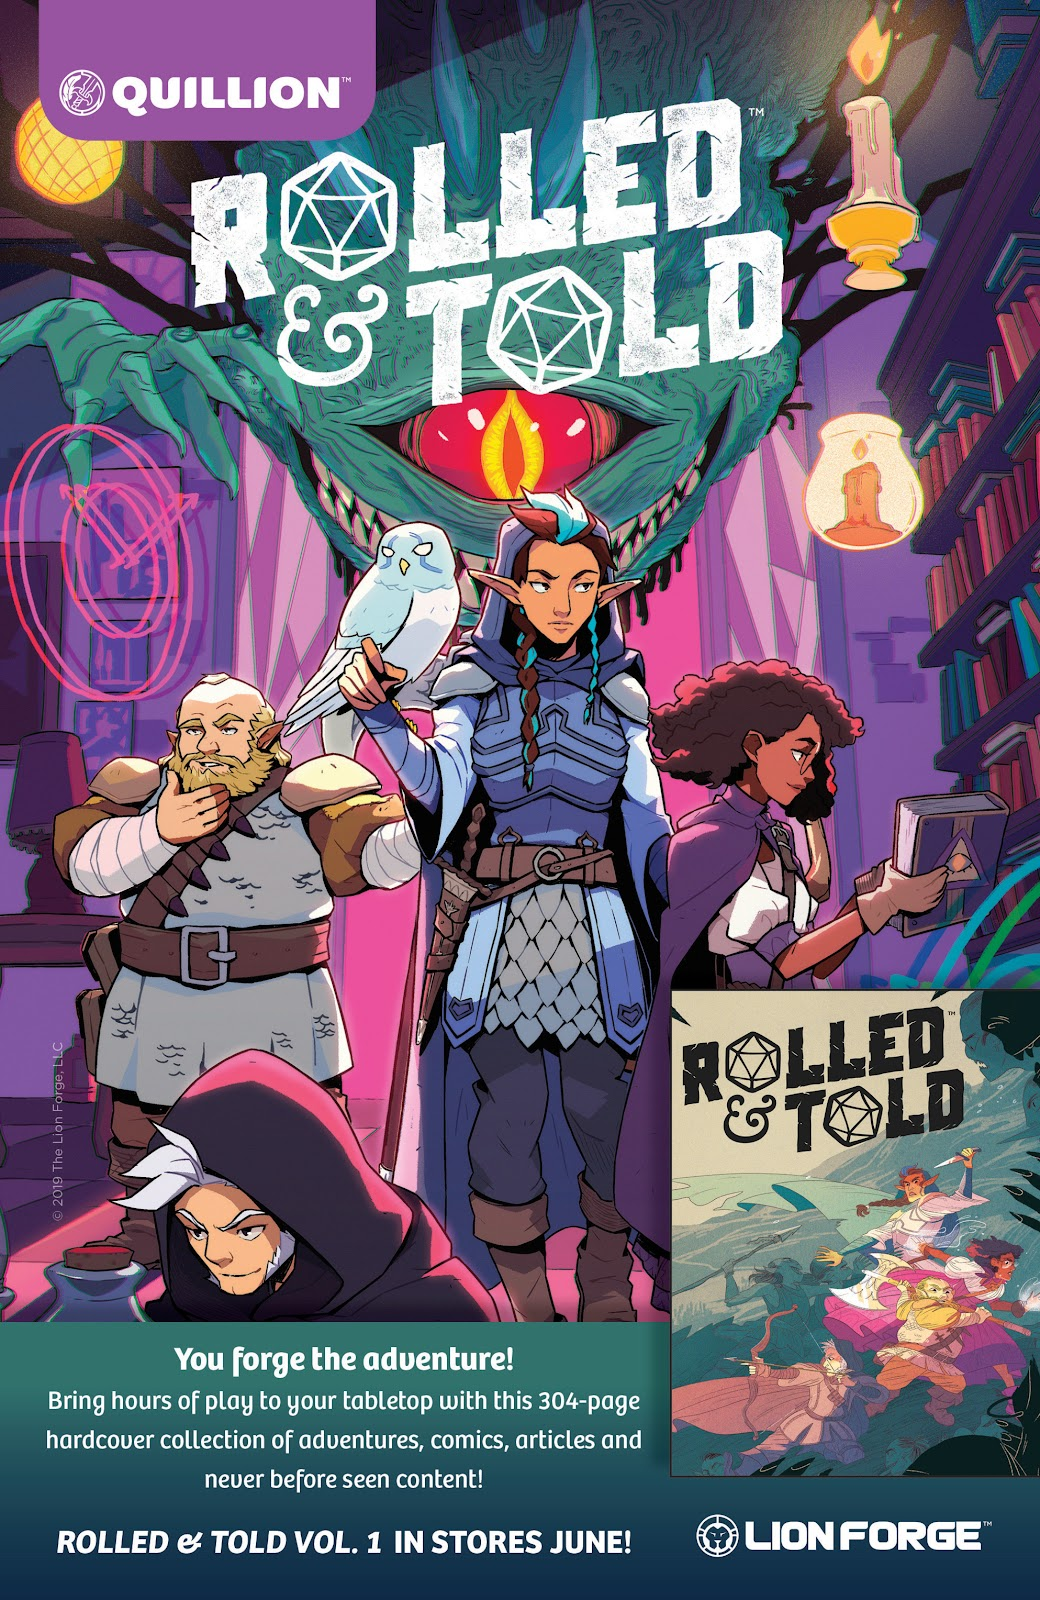 Read online Rolled & Told comic -  Issue #9 - 2